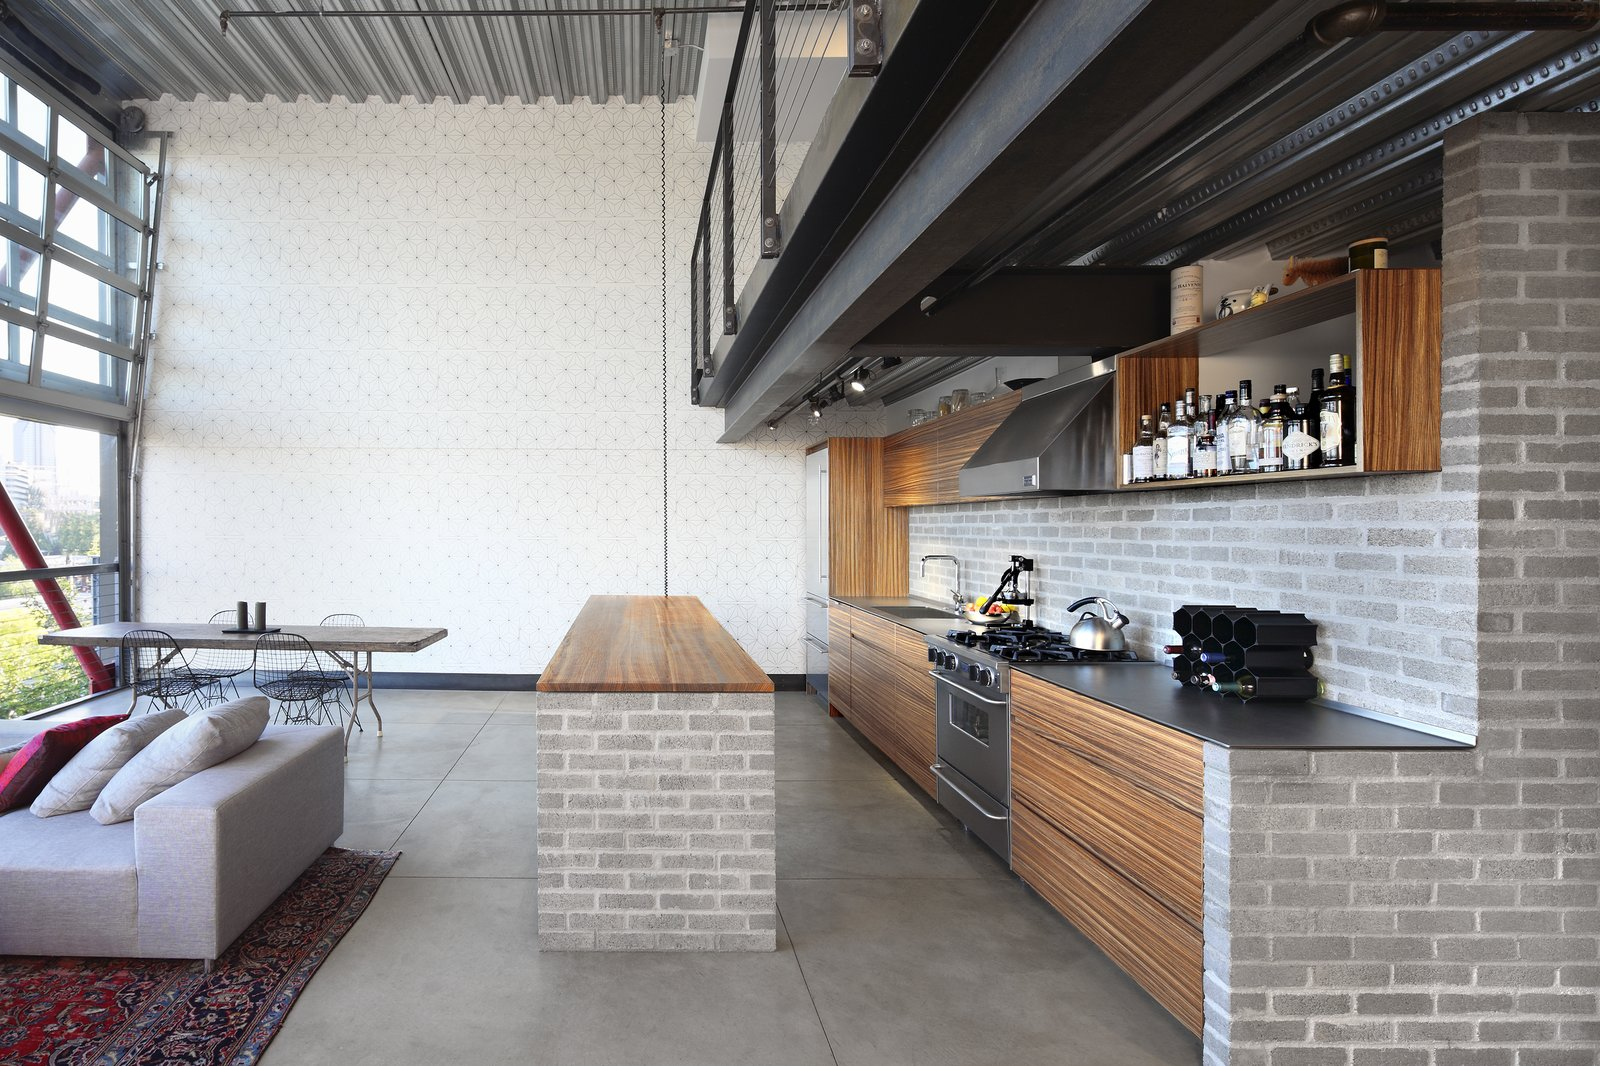 Kitchen, Wood Cabinet, Range Hood, Concrete Floor, Wall Oven, Track Lighting, Drop In Sink, Brick Backsplashe, Rug Floor, Wood Counter, Refrigerator, Range, Open Cabinet, and Beverage Center Here, an industrial material palette—with a concrete brick backsplash and counter foundation, and zinc-plated pan-decking ceilings—complement the development's edgy facade.  Photos from Before & After: Two Game-Changing Kitchen Renovations by a Seattle Studio